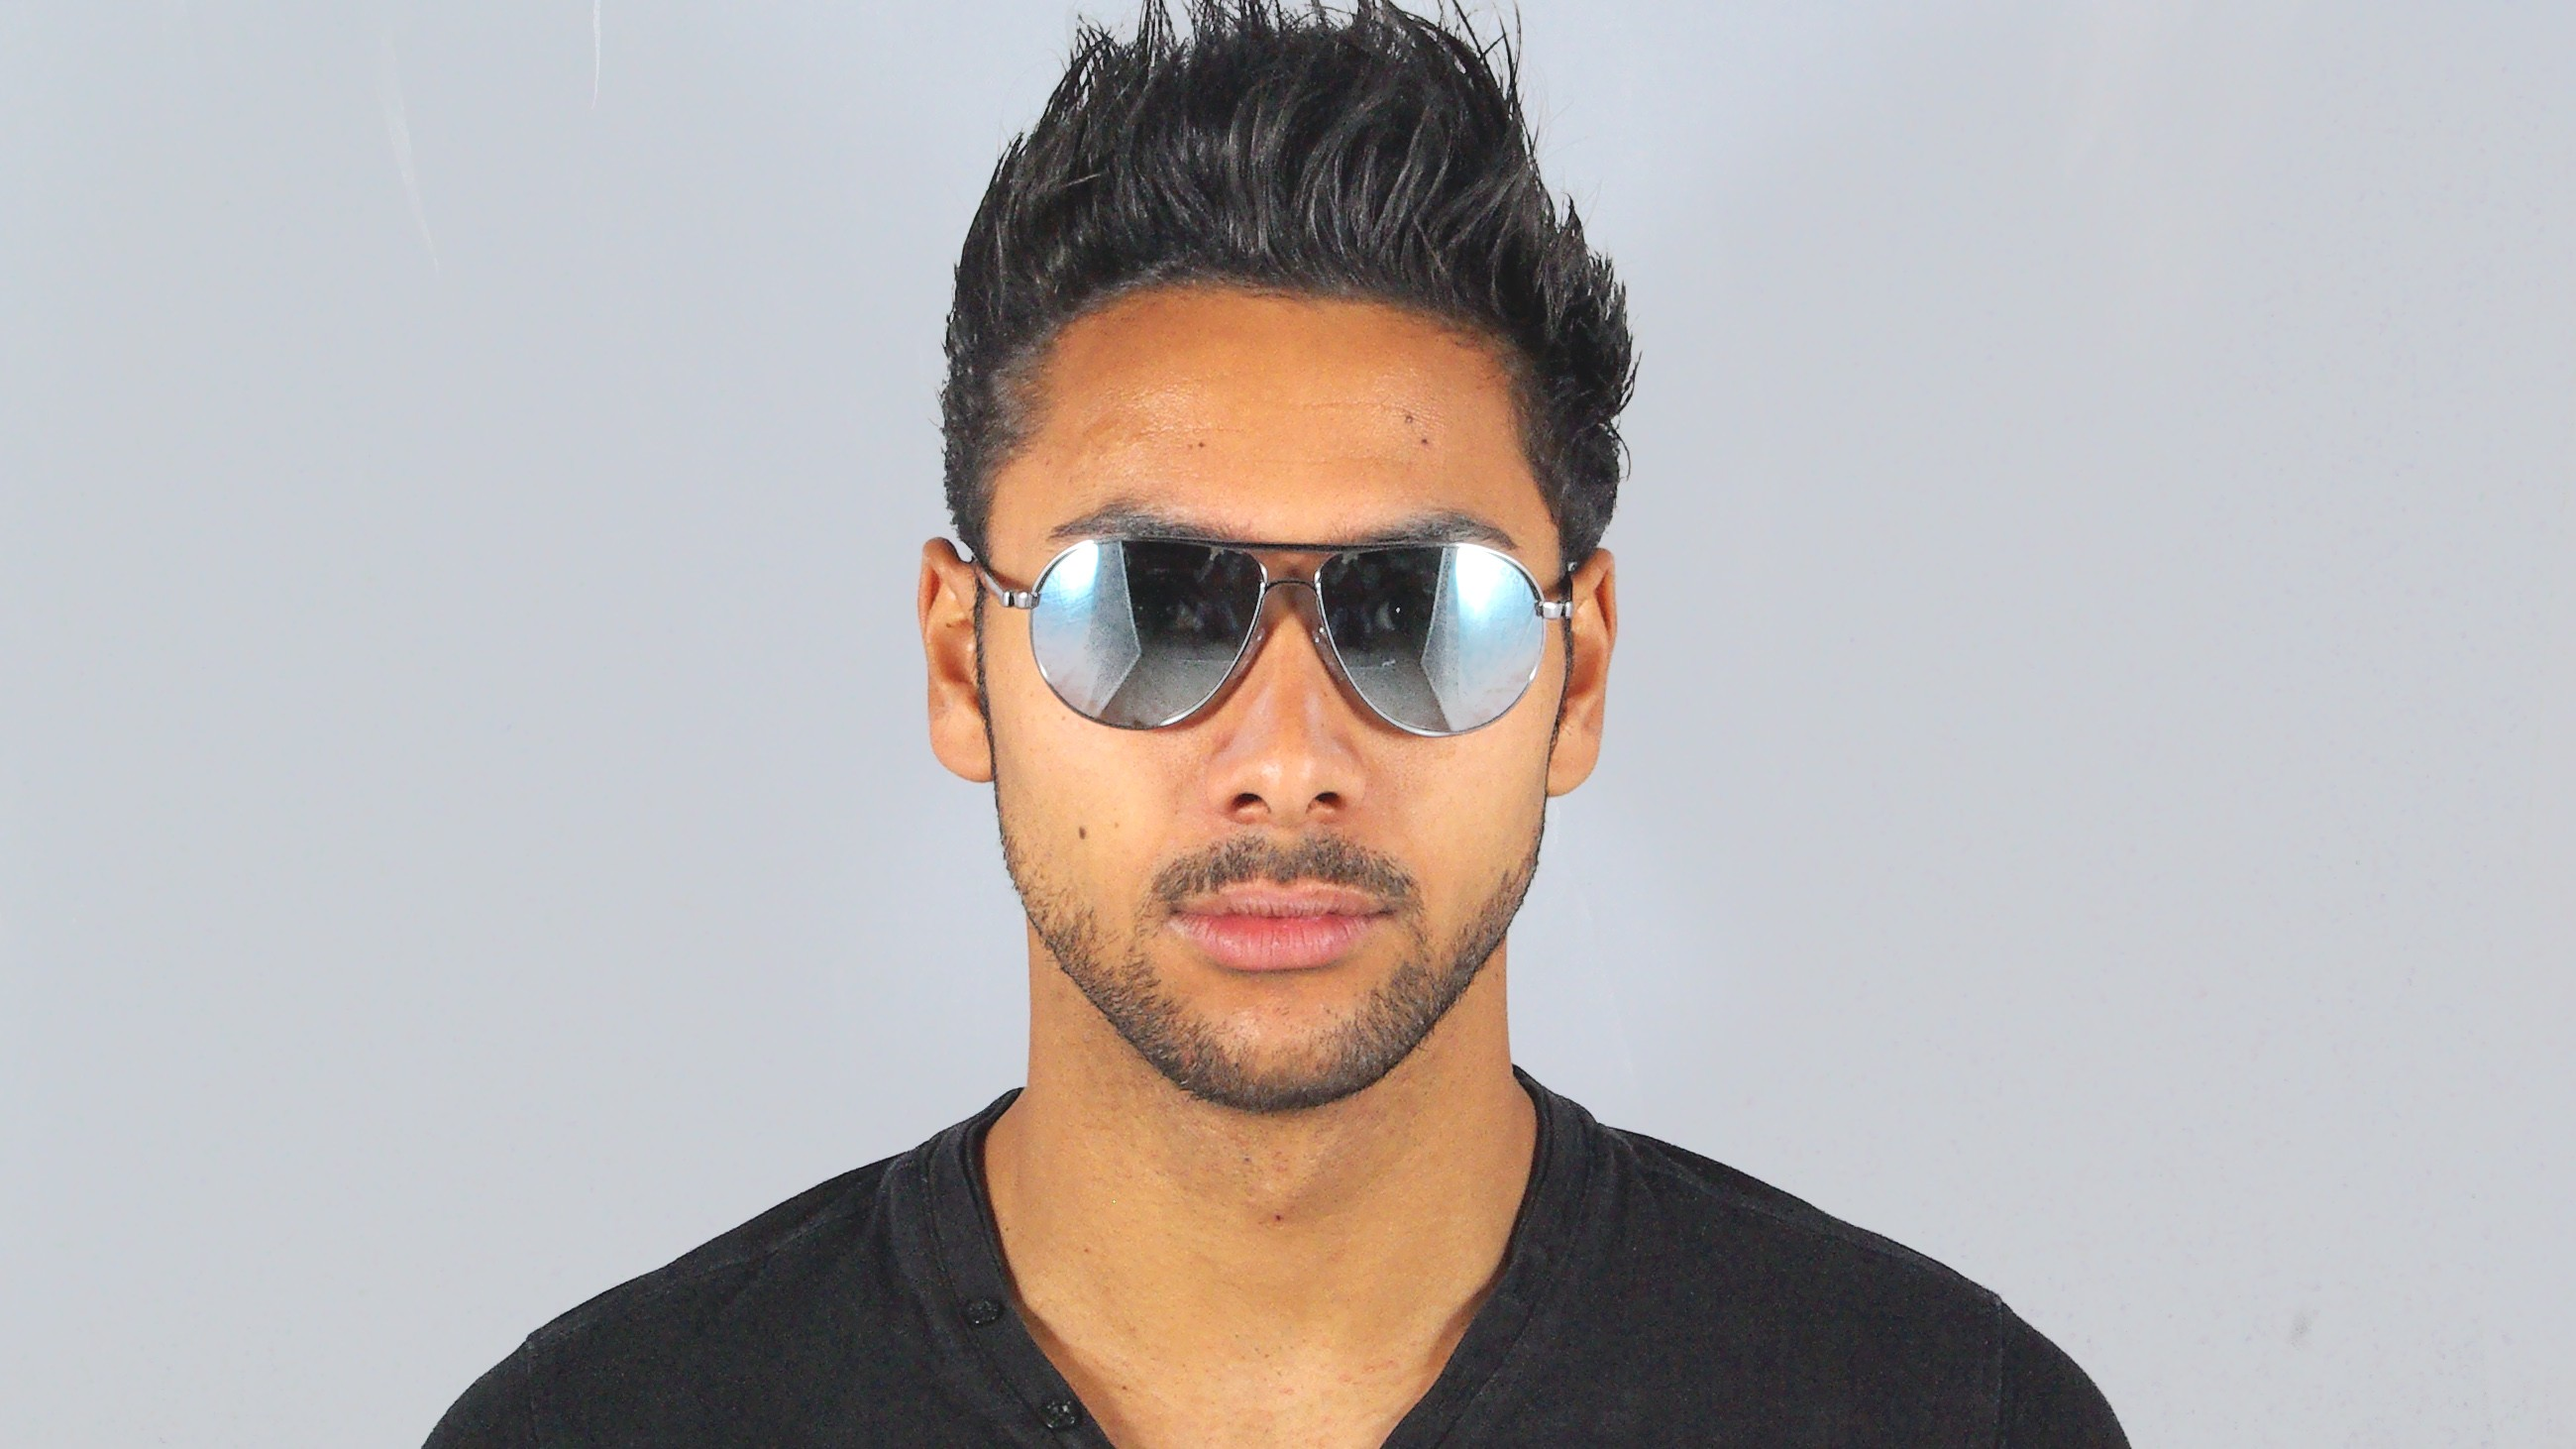 Oakley sunglasses asian fit - Sunglasses Tom Ford Marko Silver Ft144 14x 58 13 Large Gradient Mirror